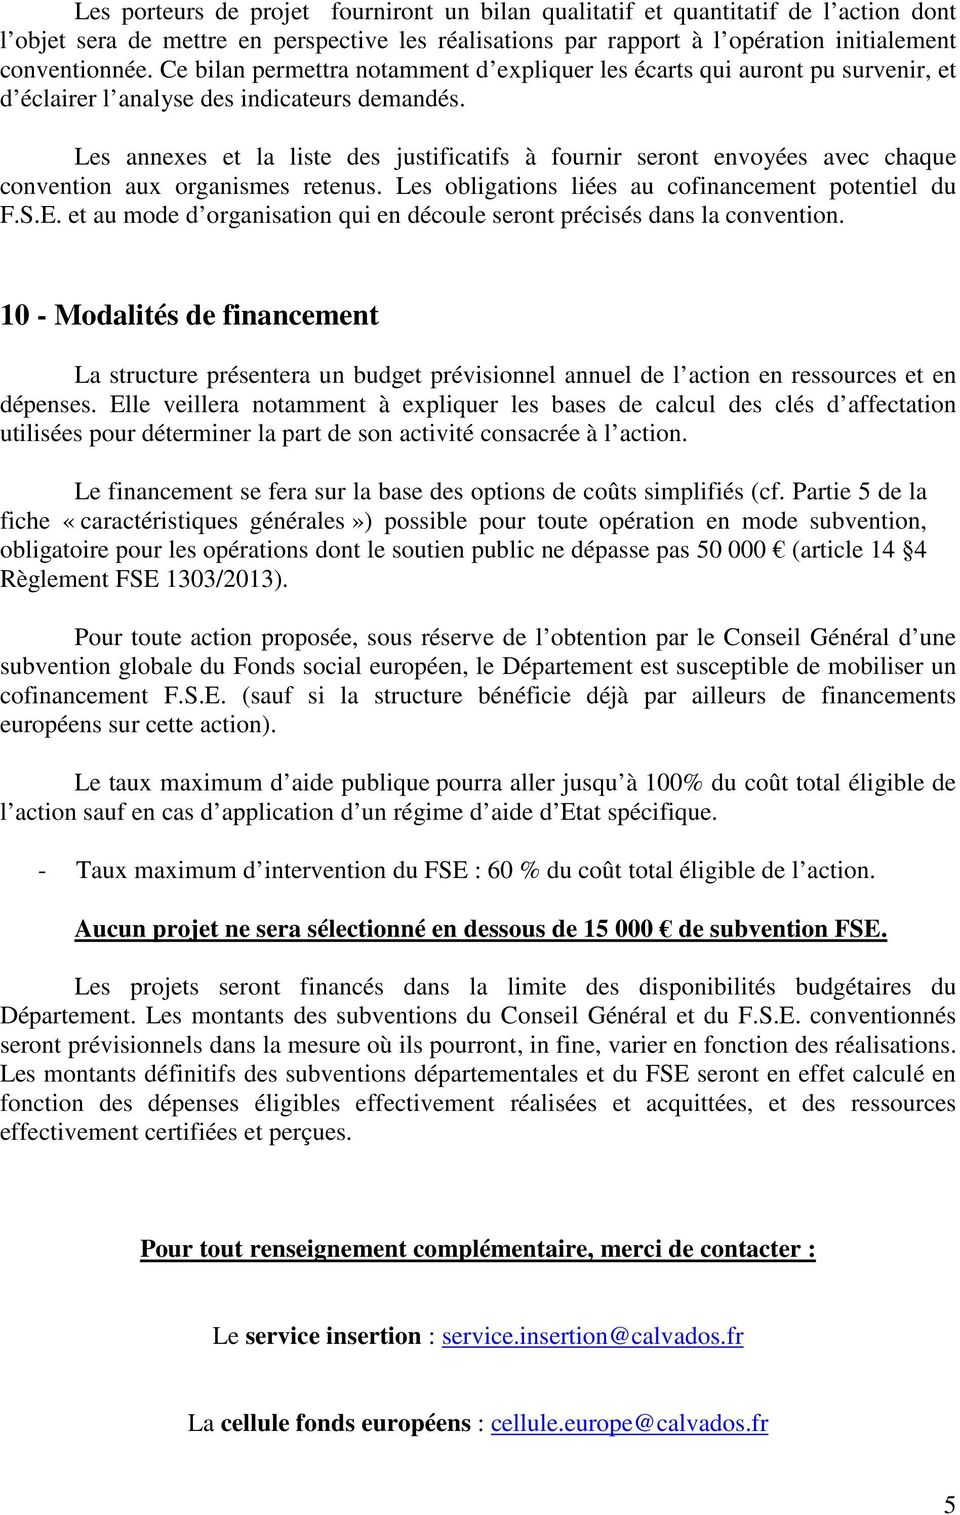 Les annexes et la liste des justificatifs à fournir seront envoyées avec chaque convention aux organismes retenus. Les obligations liées au cofinancement potentiel du F.S.E.